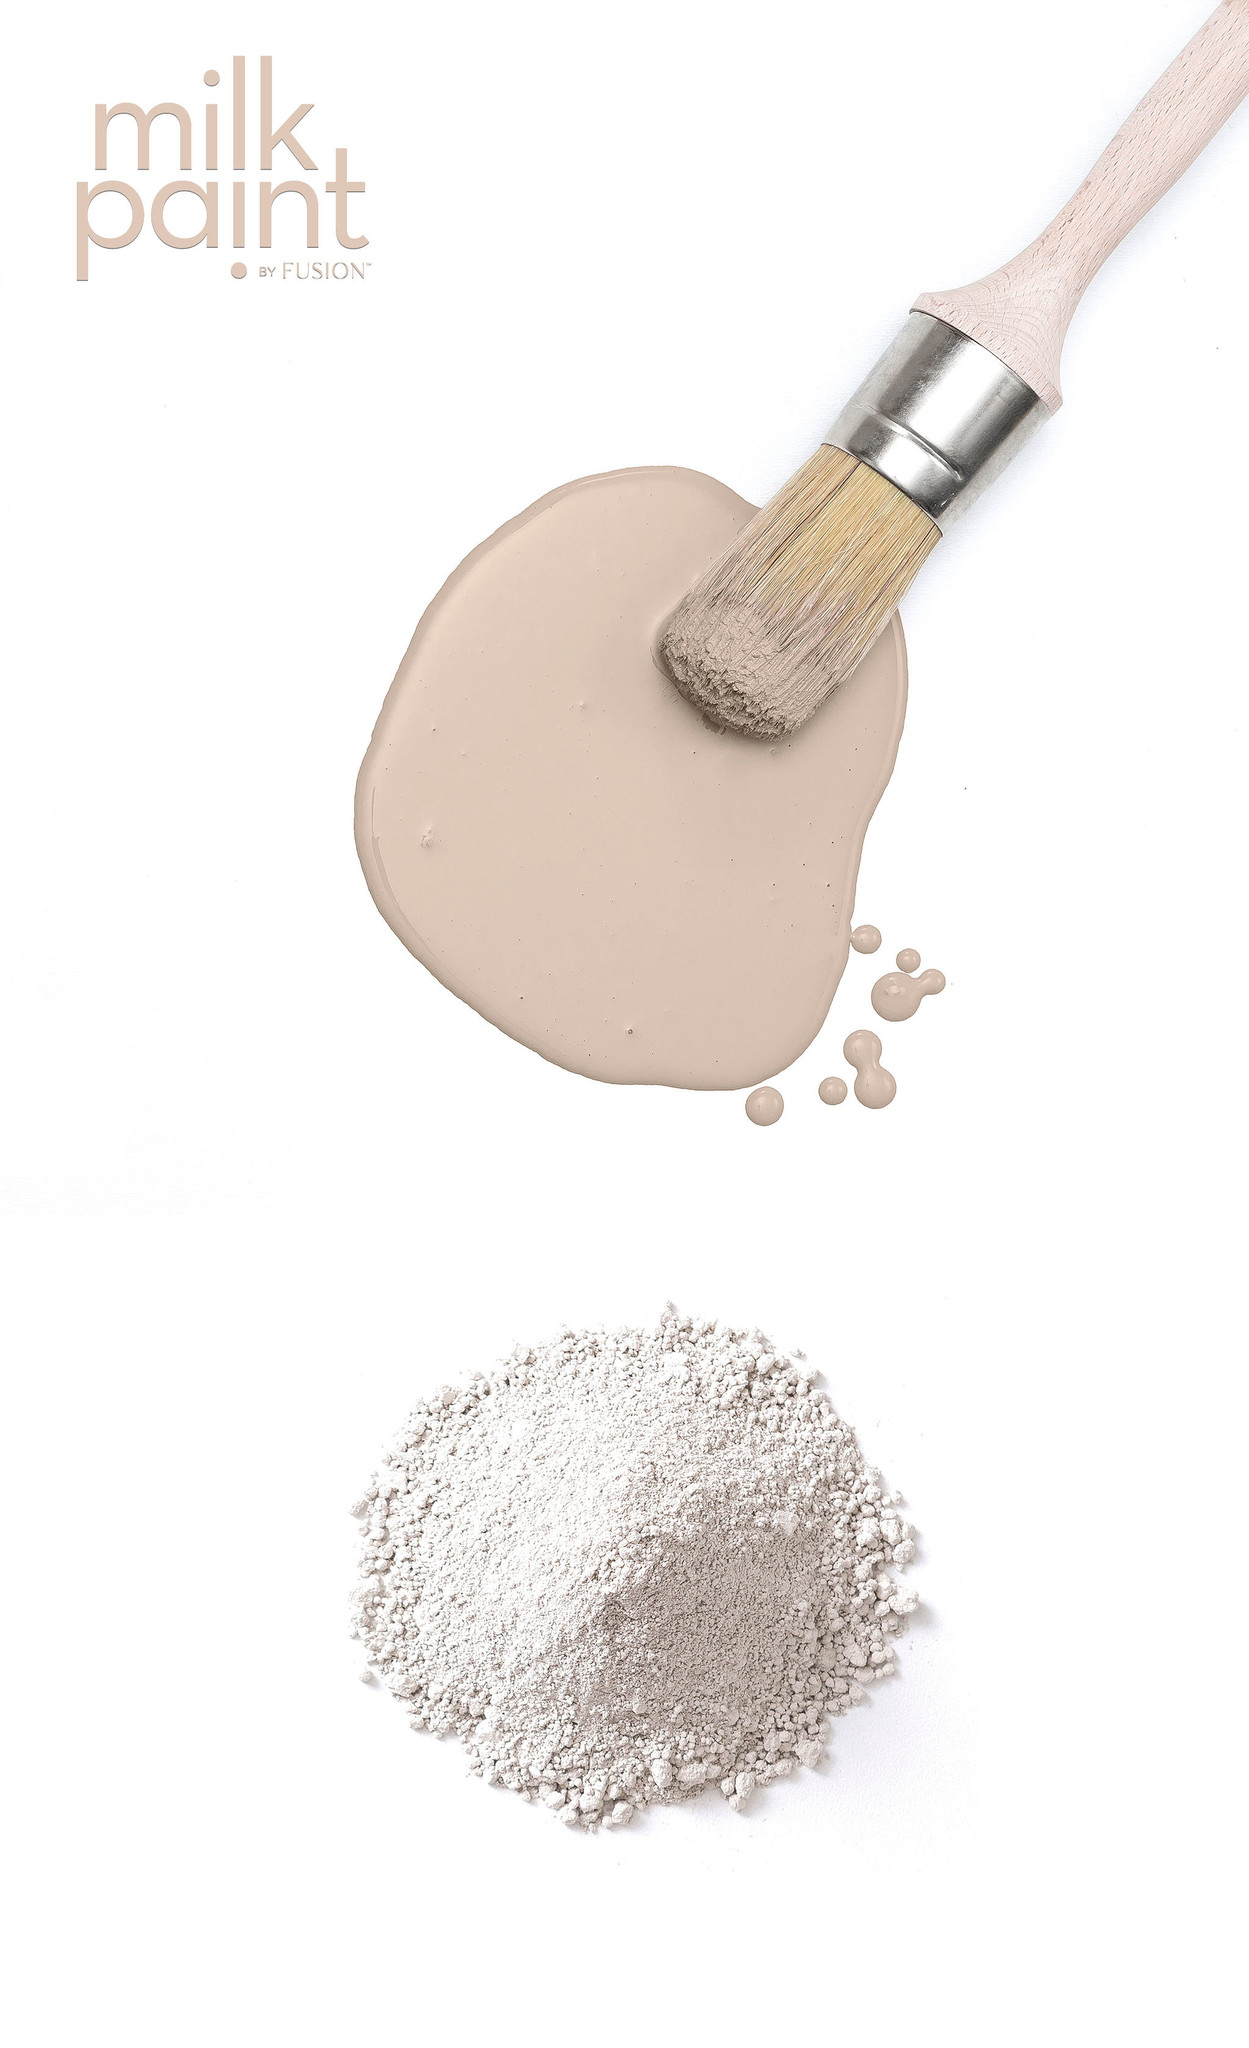 Fusion Mineral Paint Fusion - Milk Paint - Oyster Bar - 330gr